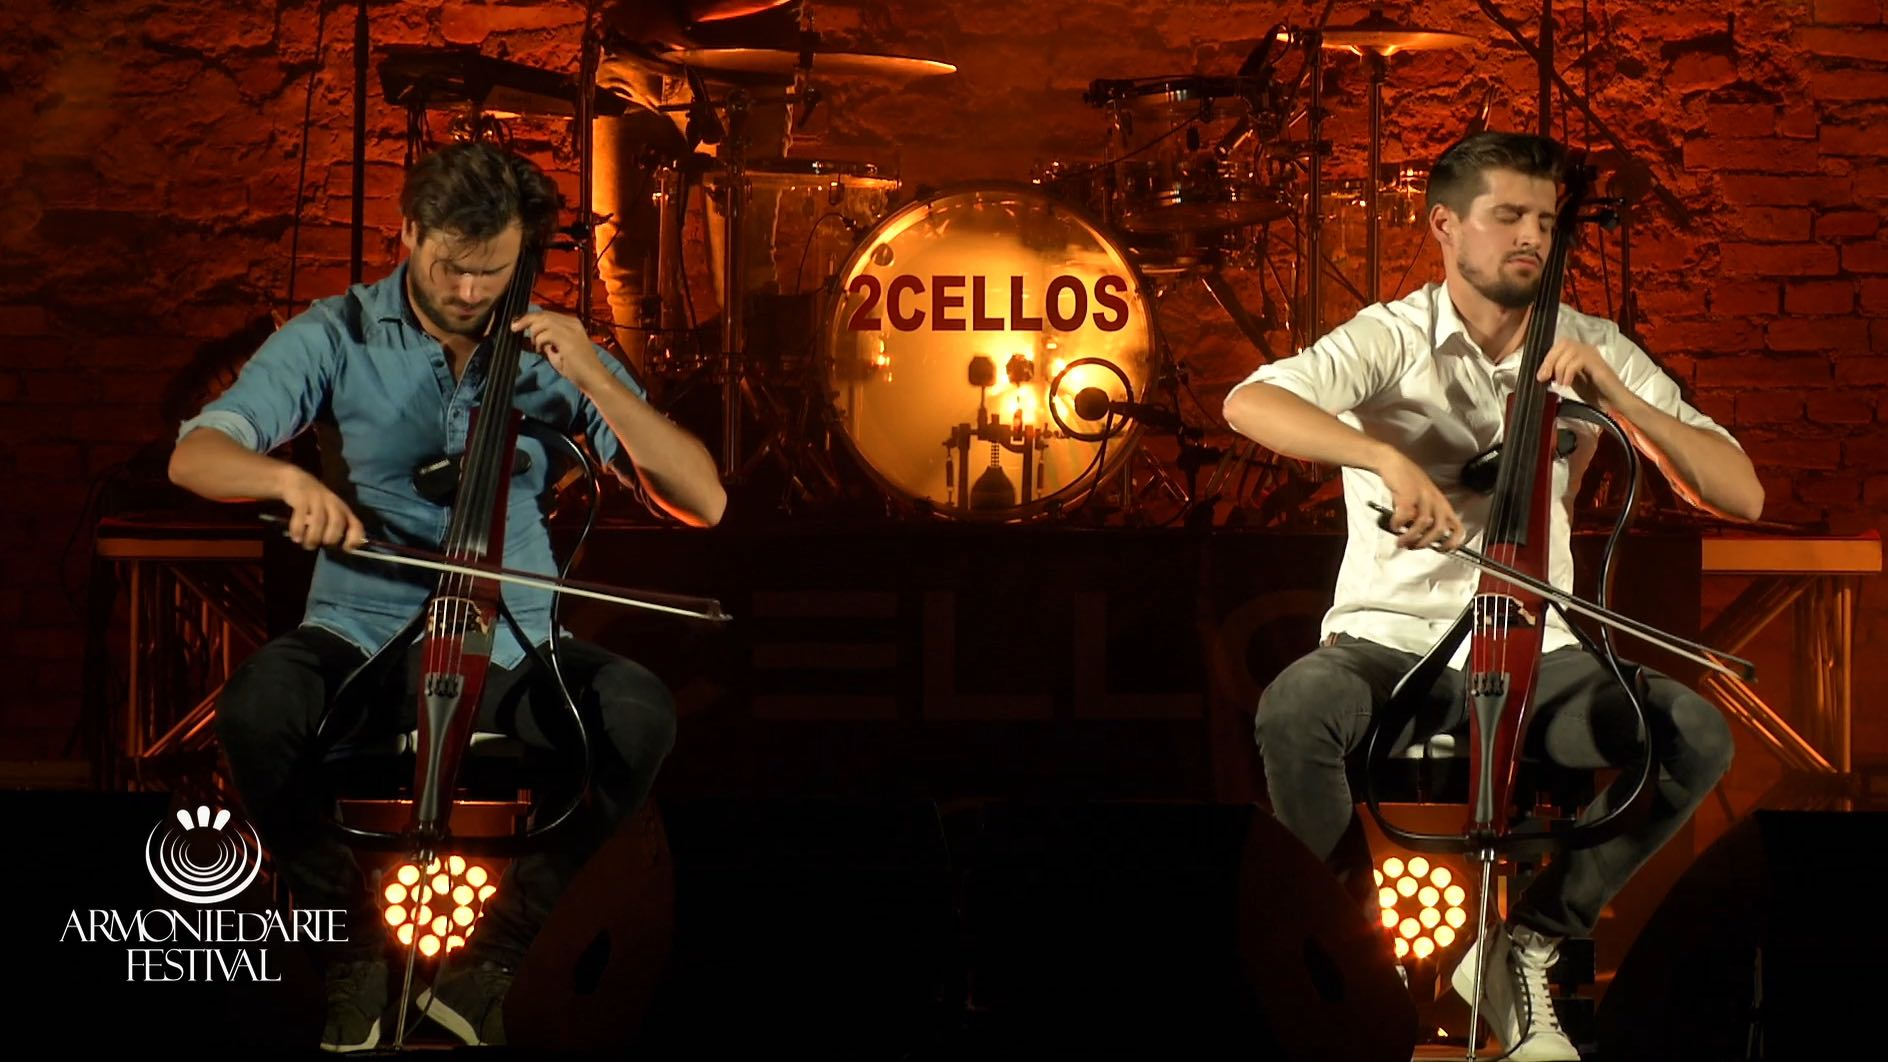 2Cellos with String Orchestra – Armonie d'Arte Festival